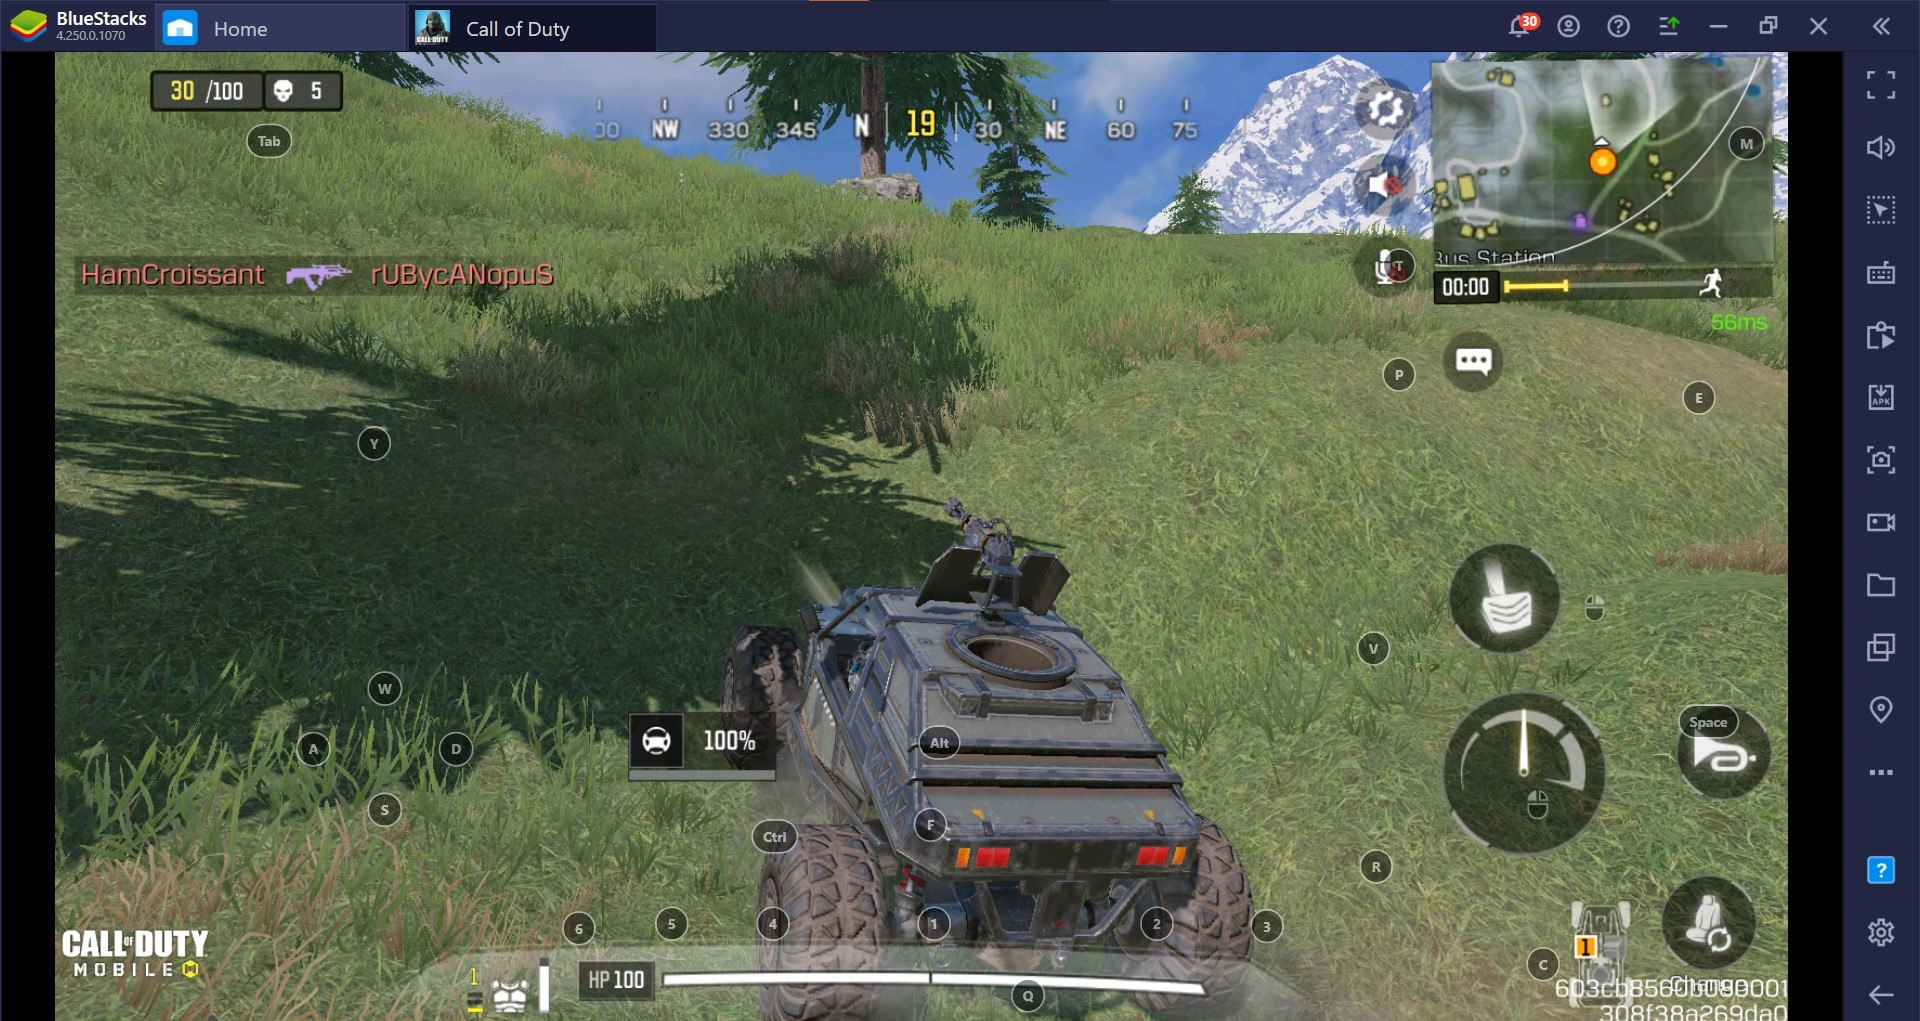 BlueStacks Guide to Vehicles in Call of Duty: Mobile